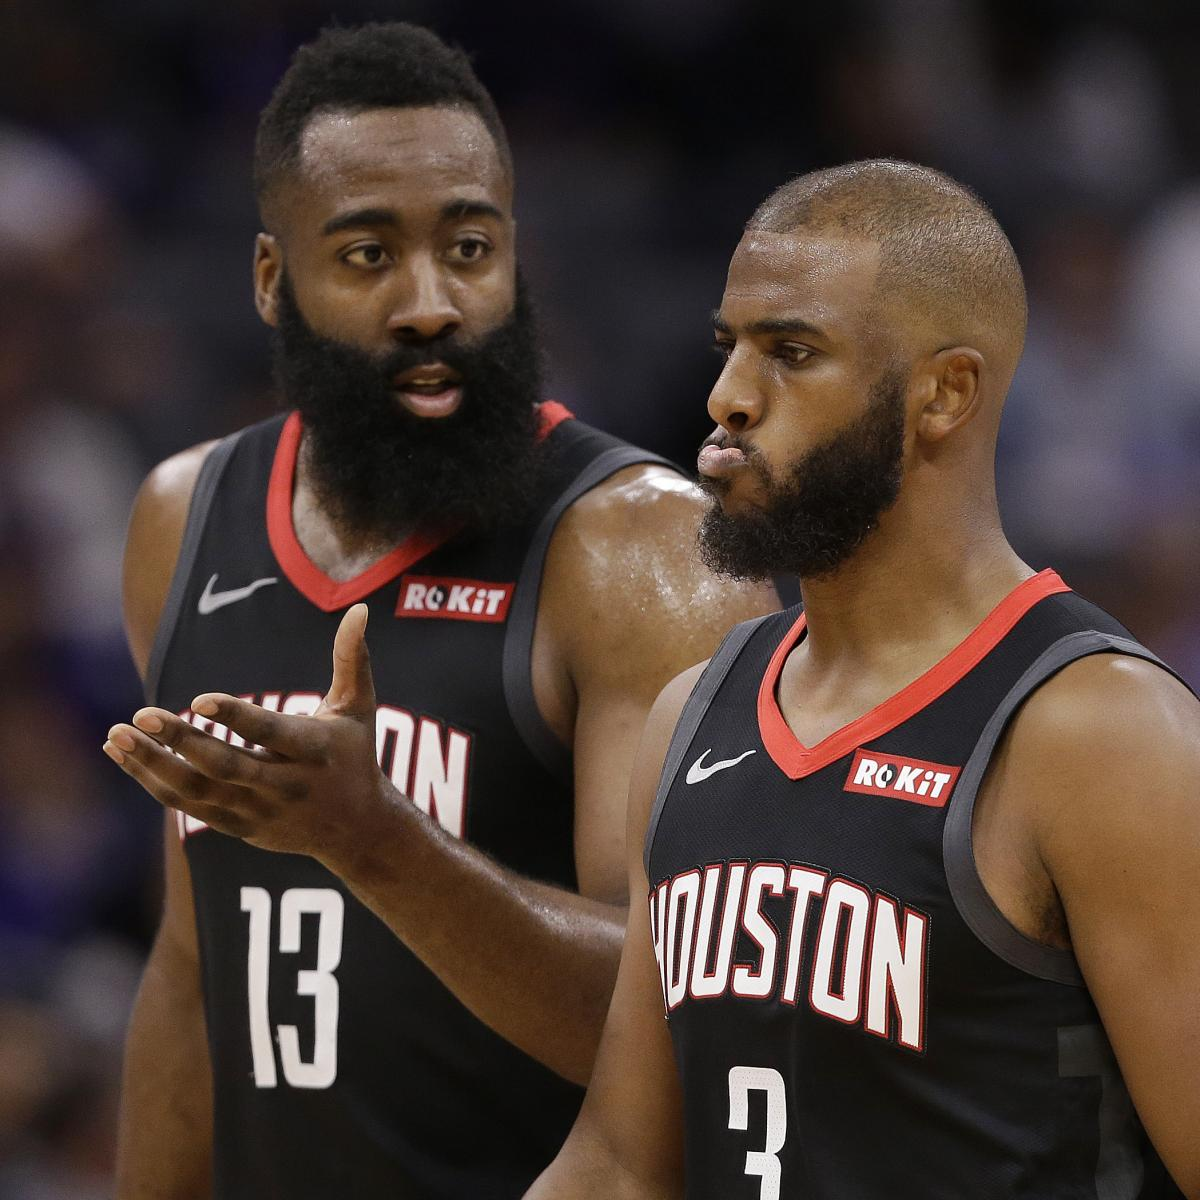 Rockets Rumors: Most Explosive Details on James Harden, Chris Paul's Friction